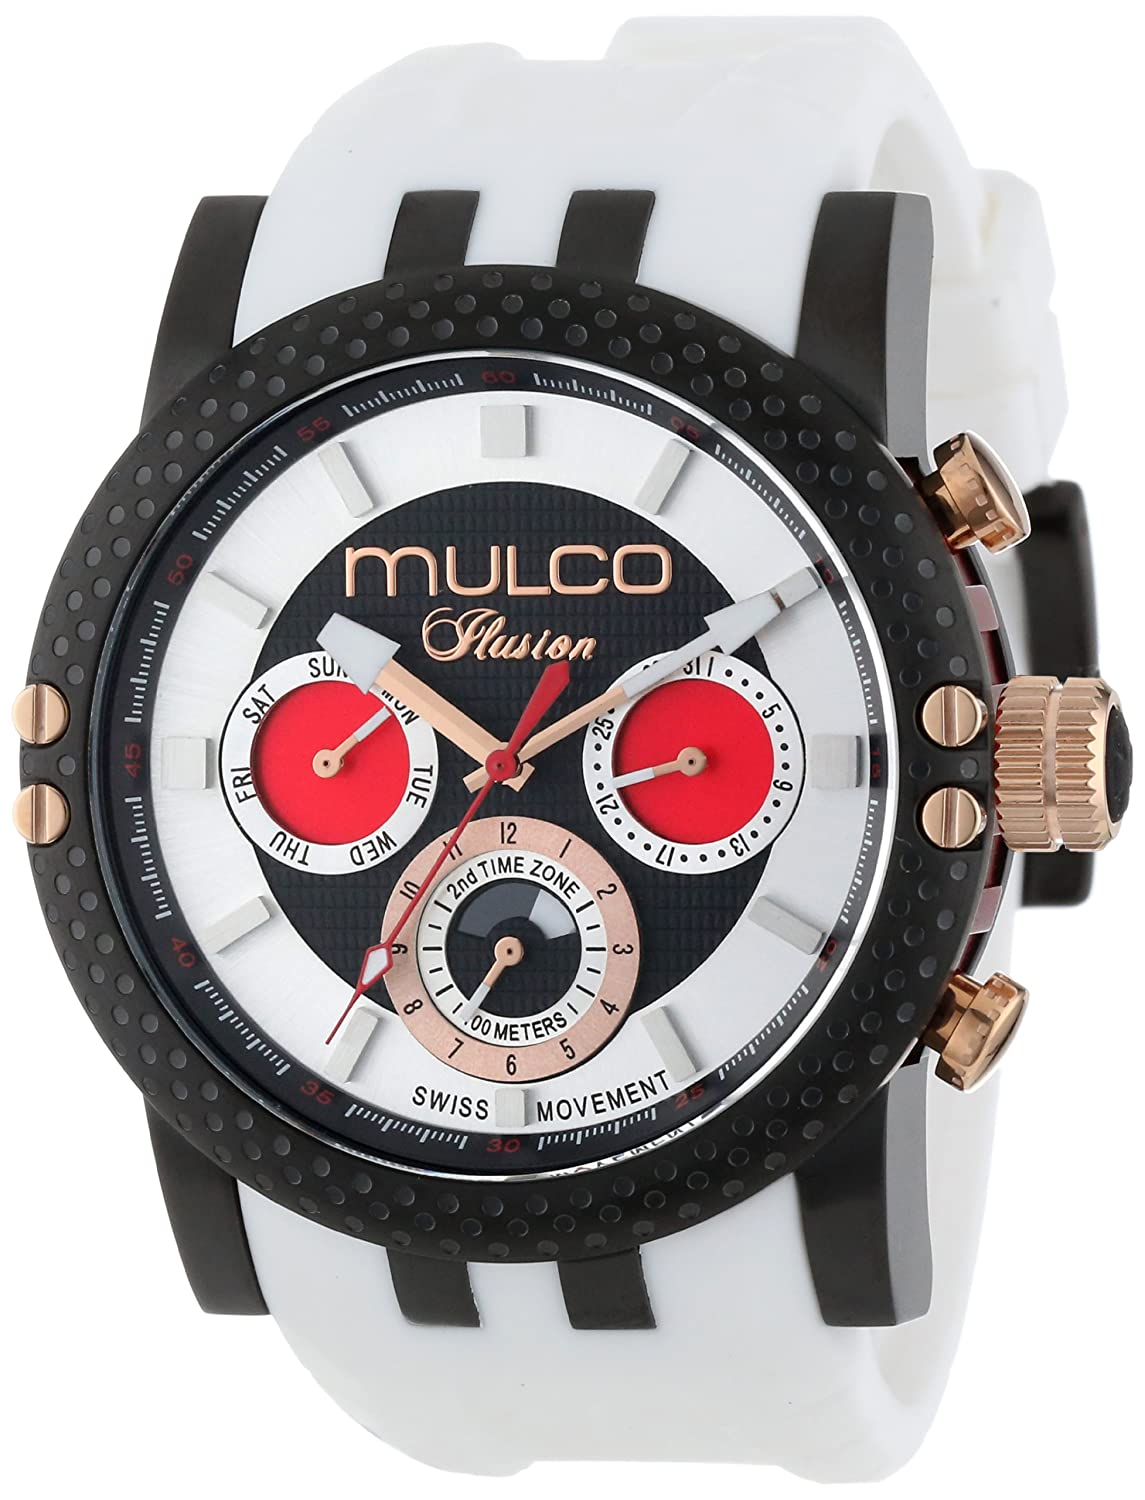 MULCO Unisex MW3-11169-015 Lincoln Illusion Chronograph Analog Swiss Movement Uhr